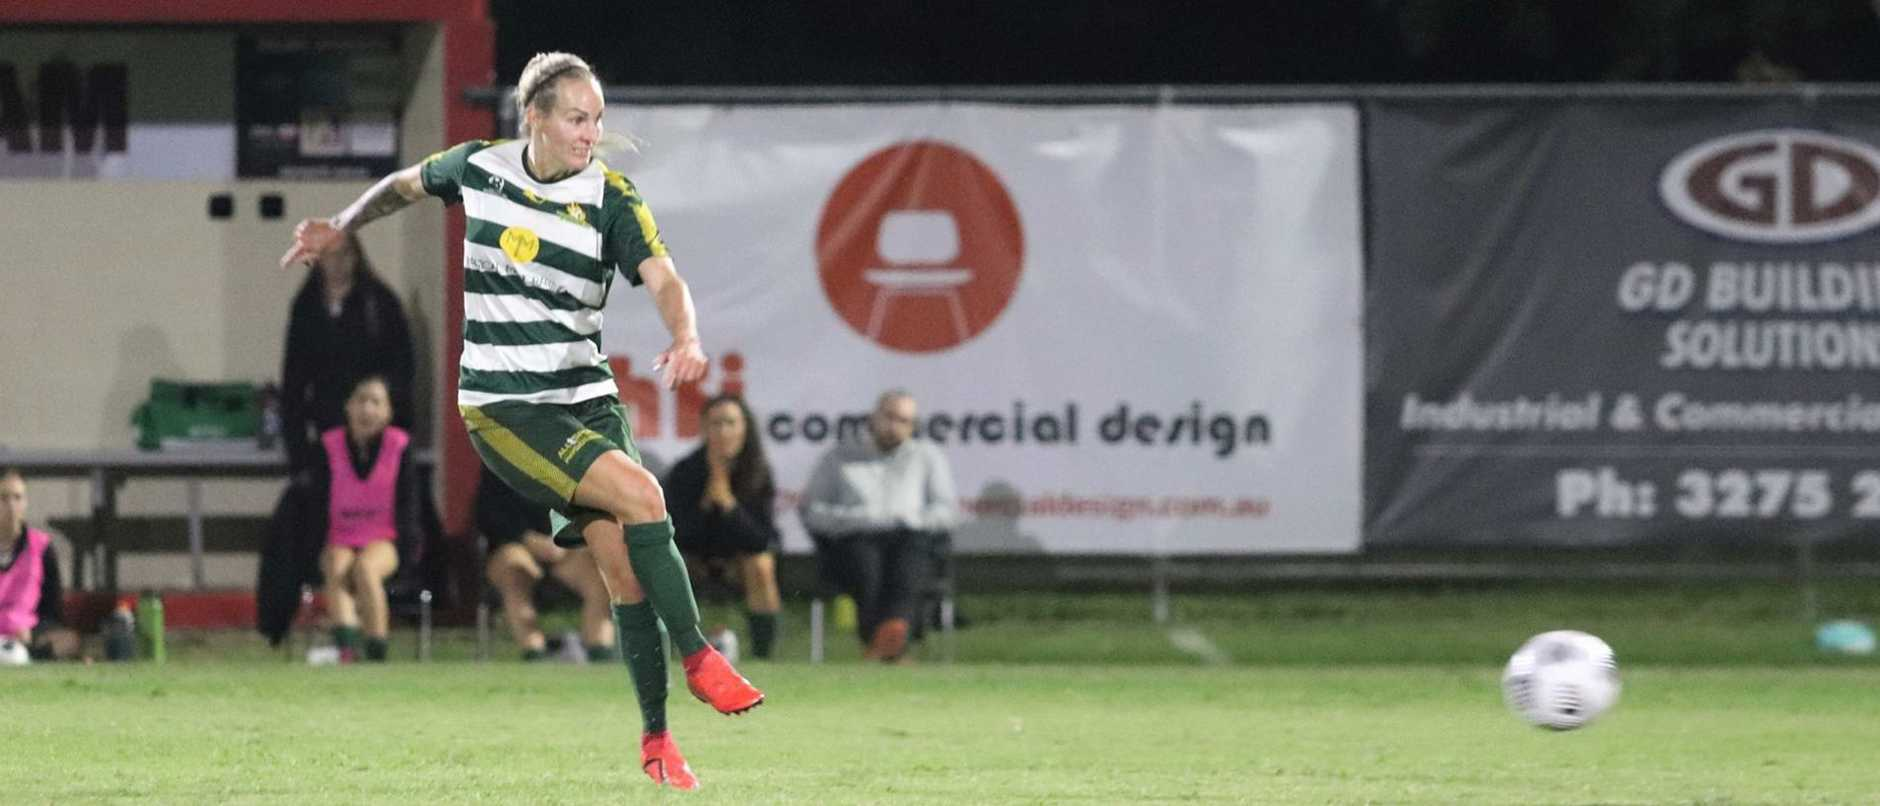 Western Pride goal scorer Kate Webb playing against Olympic in a recent NPL match. Picture: Kerryn Hyett